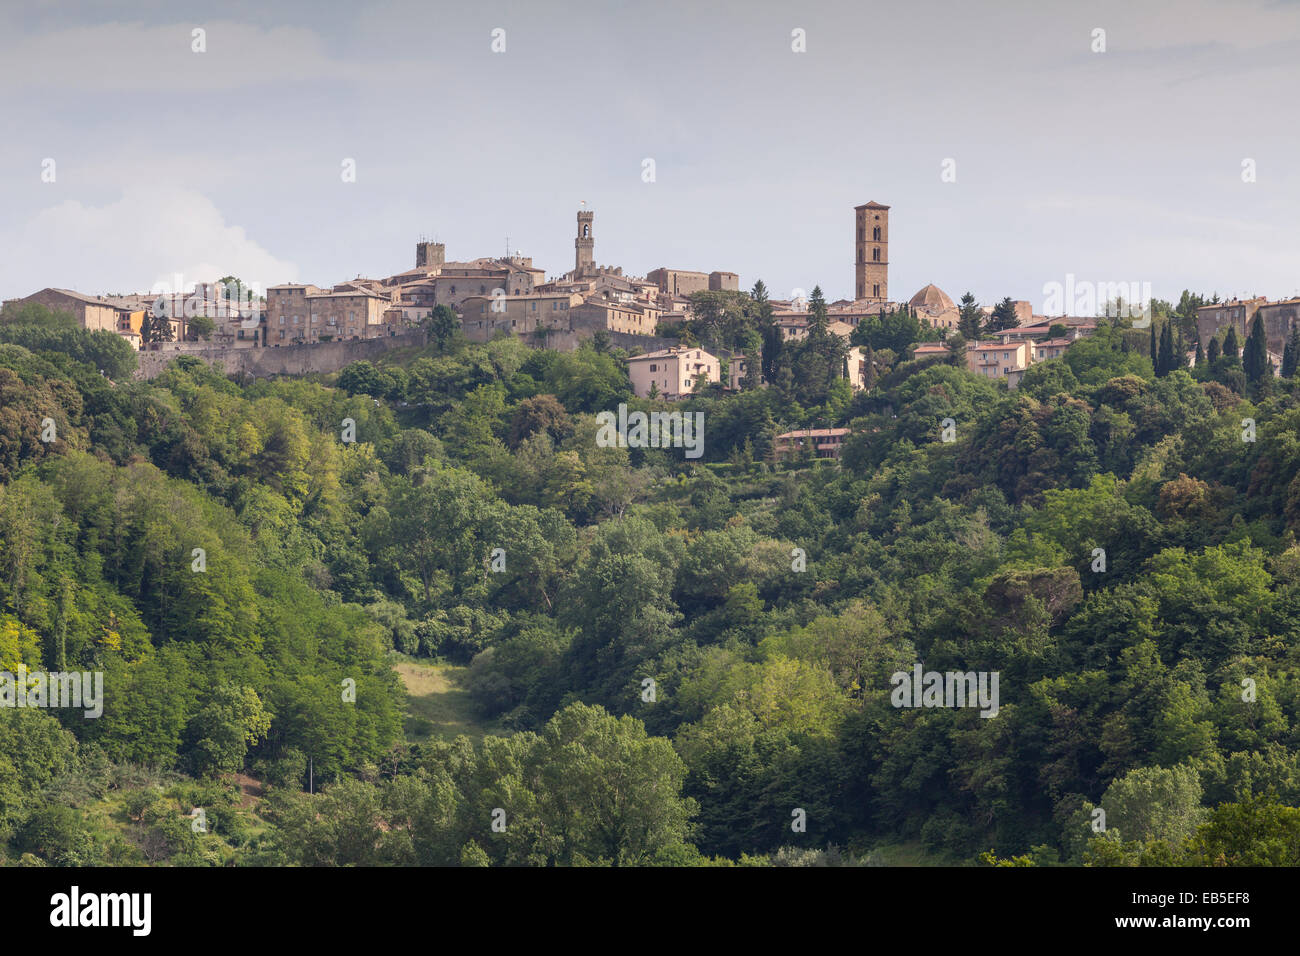 The town of Volterra, Tuscany. - Stock Image